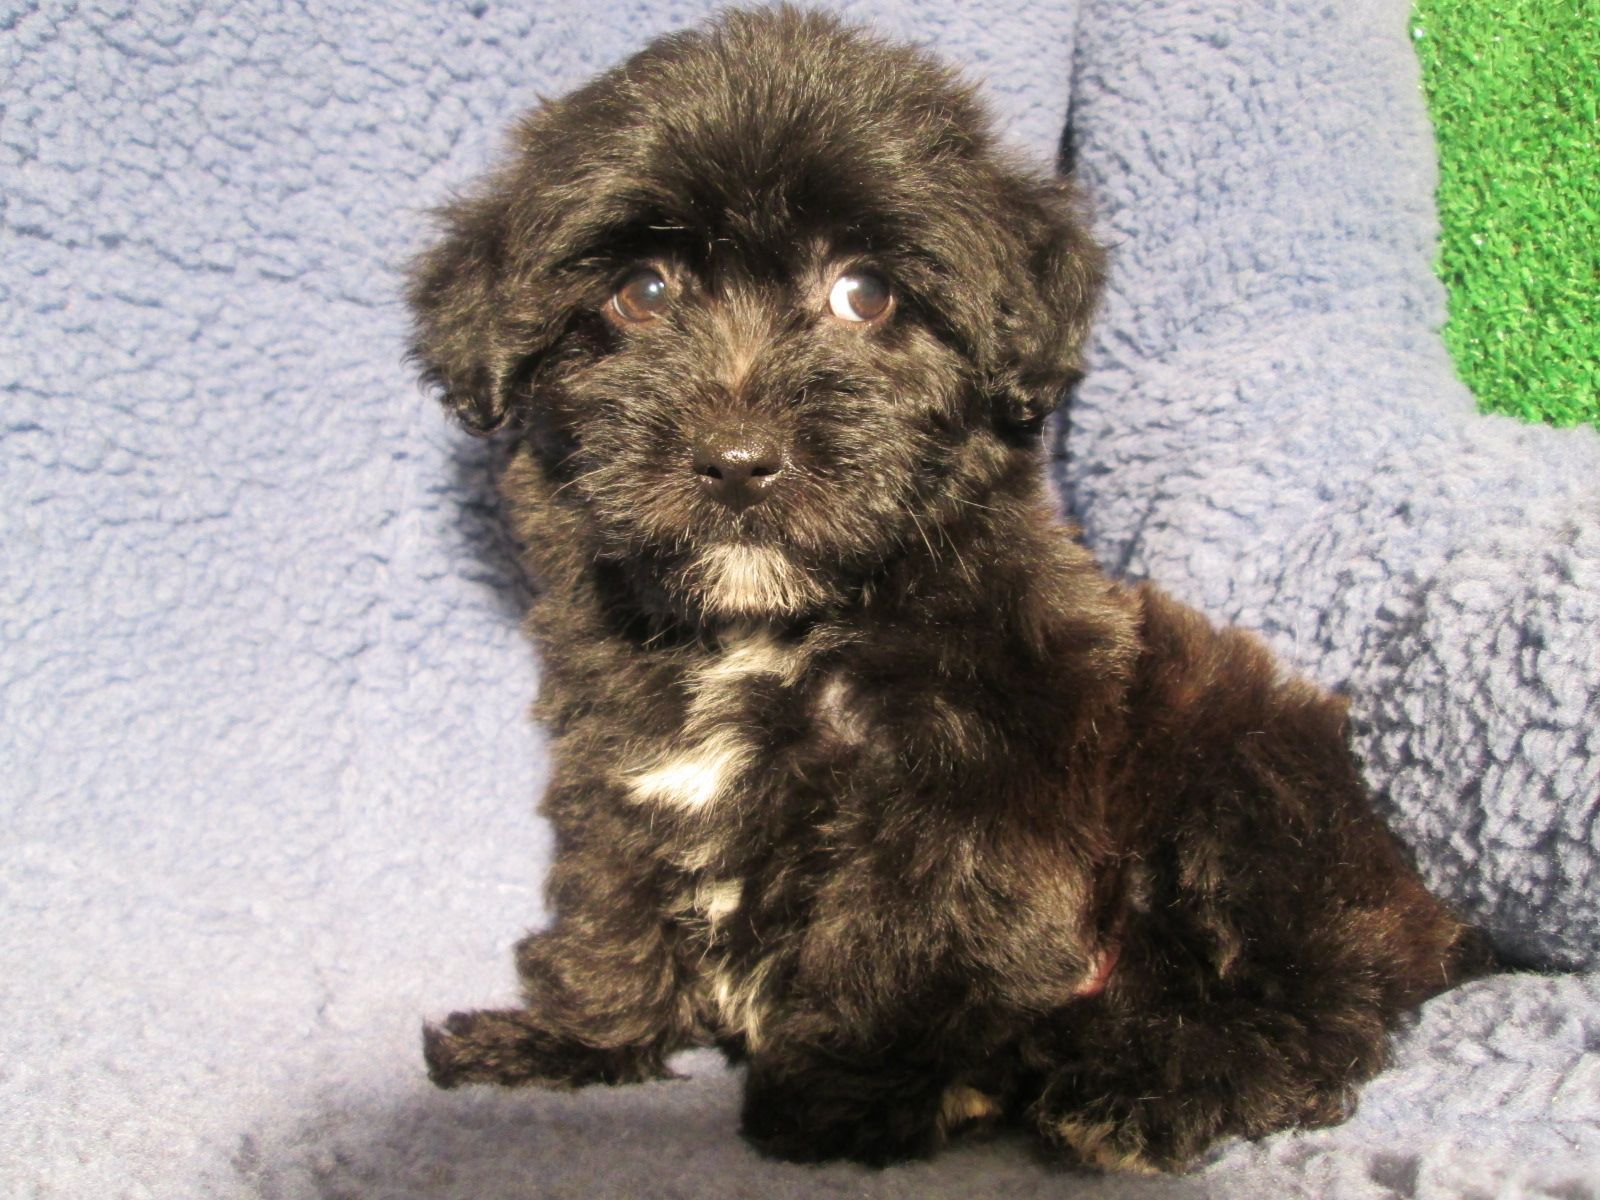 Gorgeous Yochon Puppies Available Yorkie X Bichon Frise 8 12 Weeks Of Age Permanent Shots And W Mixed Breed Puppies Puppies Puppies For Sale